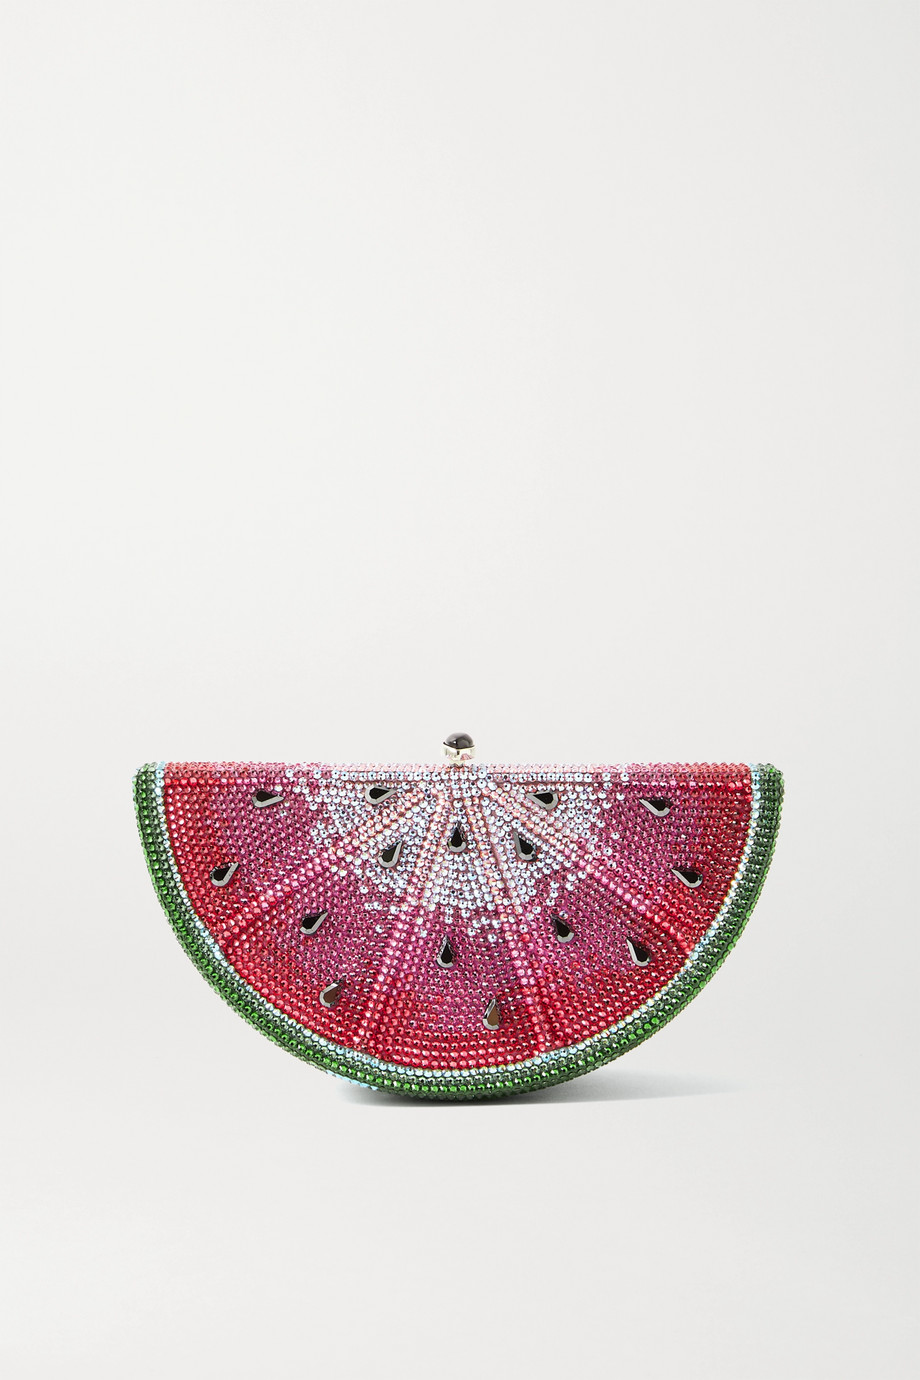 Judith Leiber Couture Slice Watermelon crystal-embellished silver-tone clutch